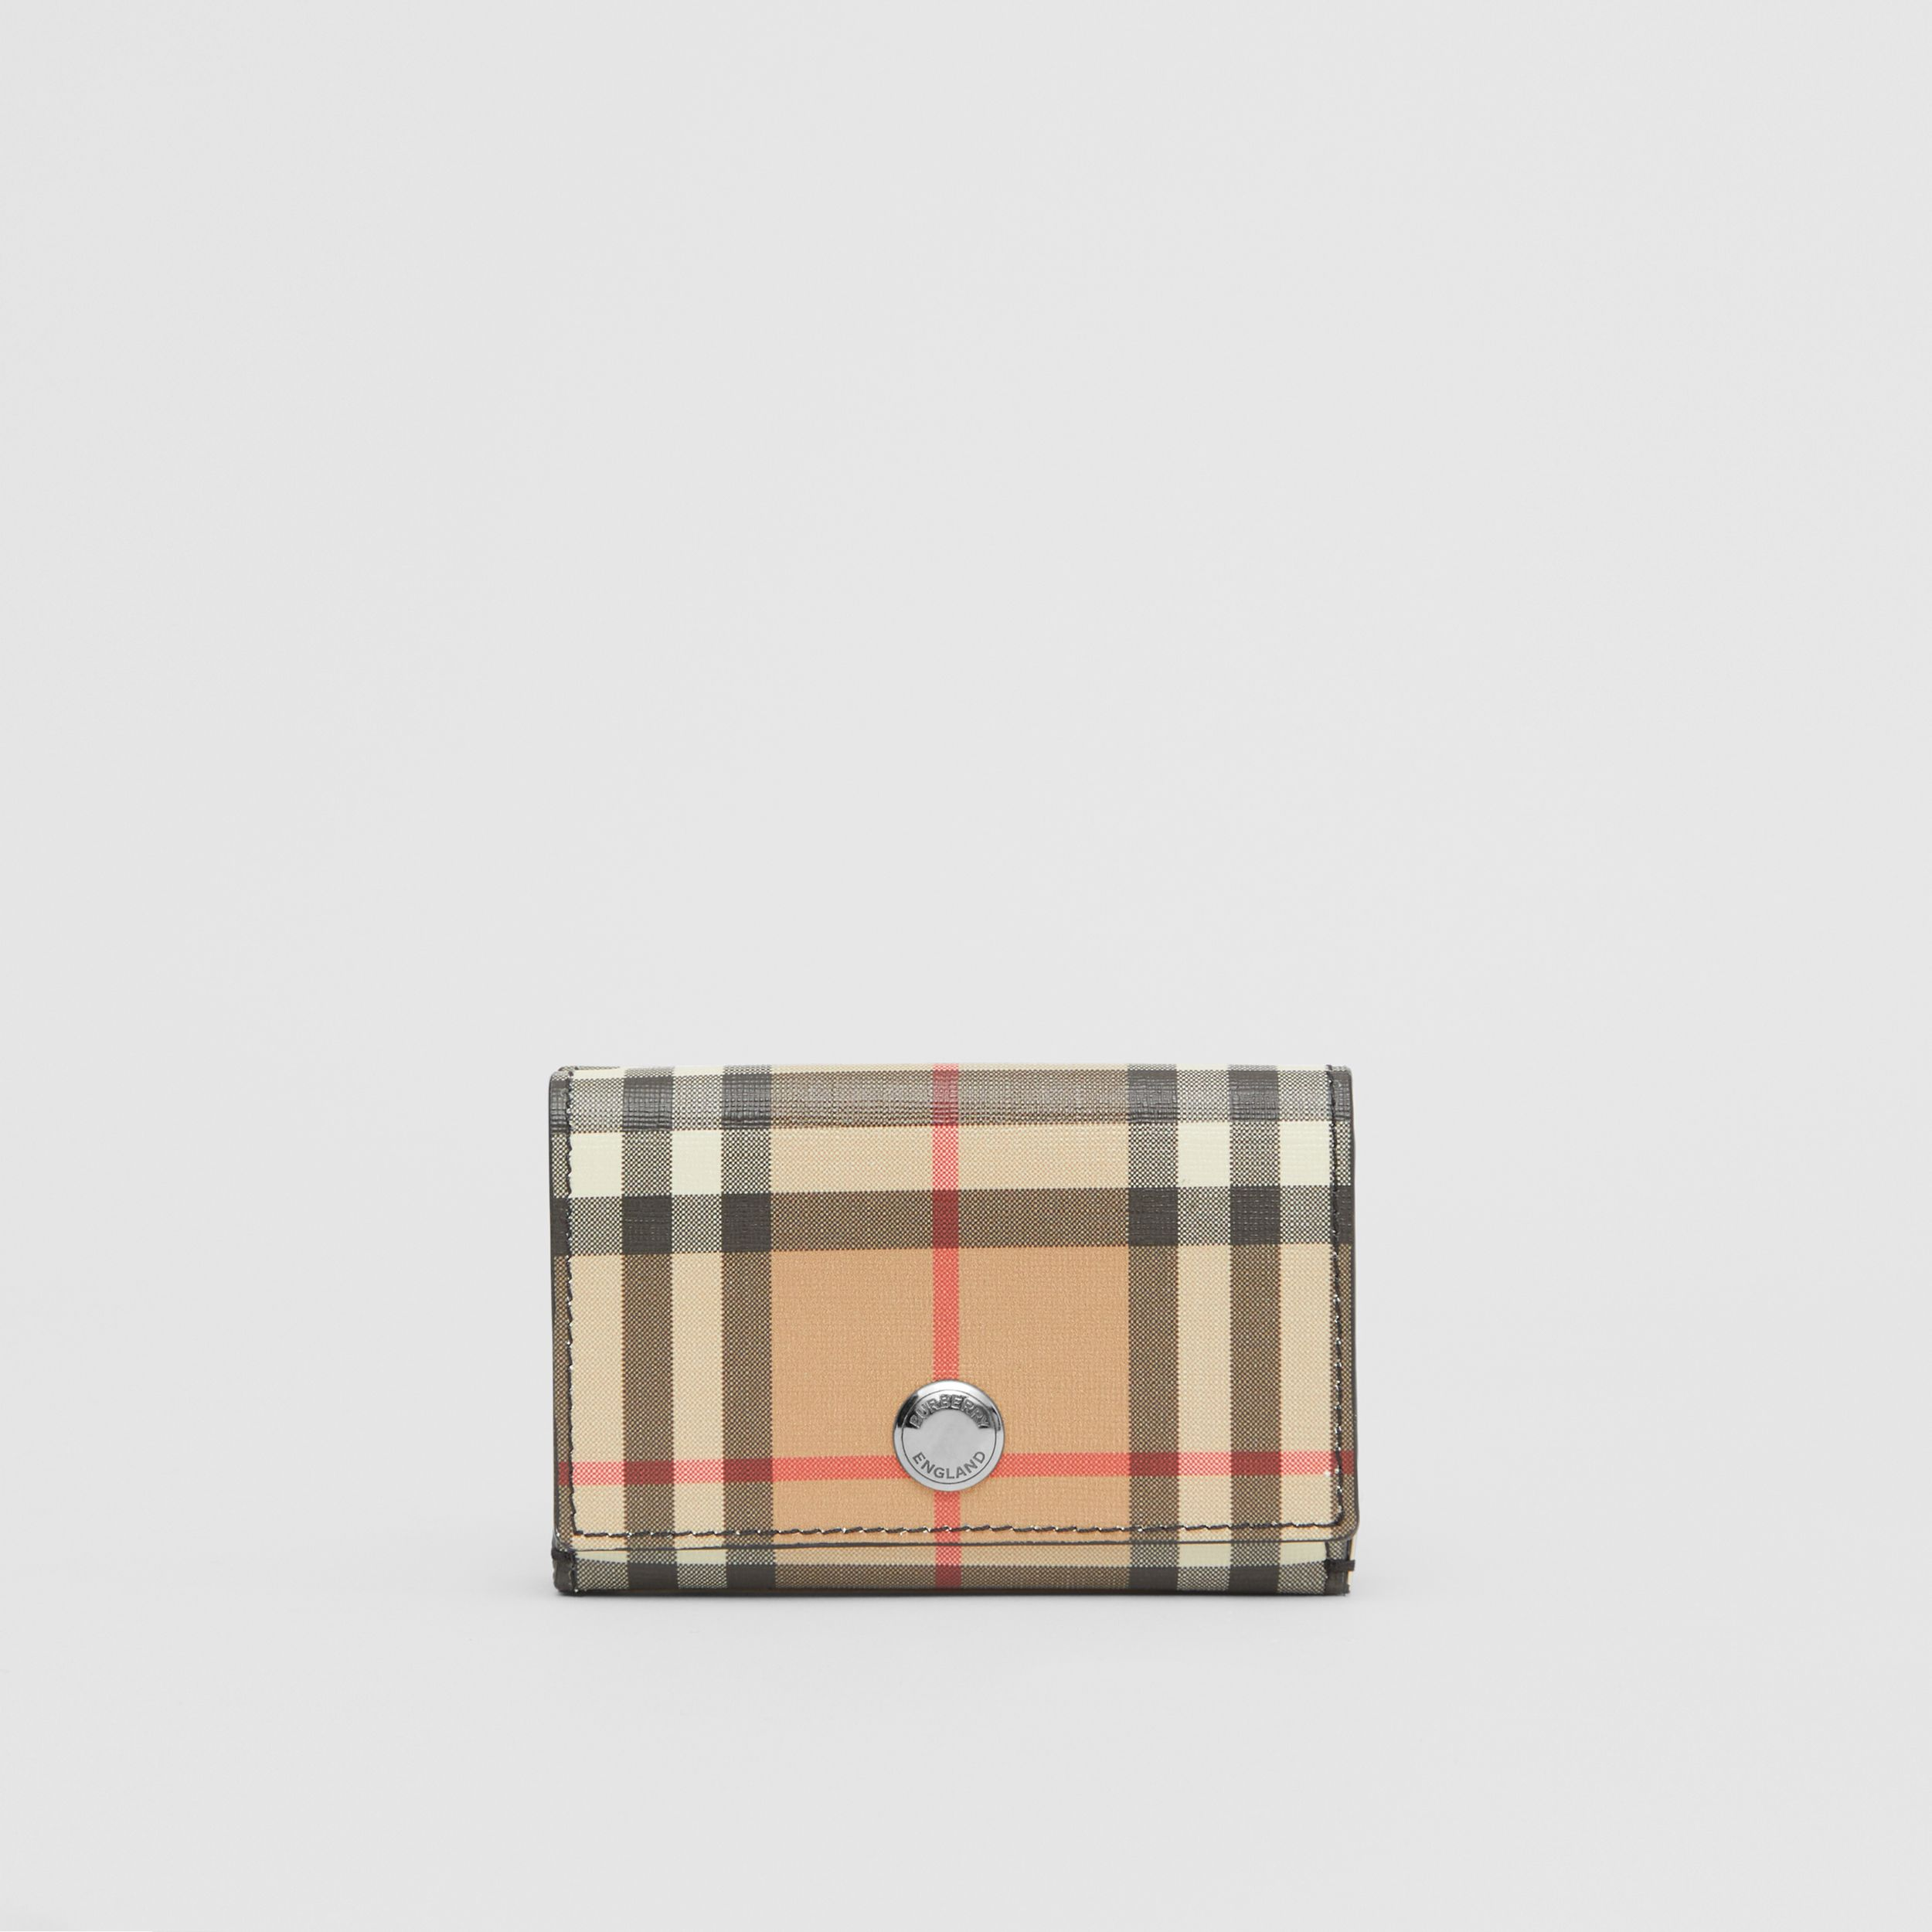 Small Vintage Check E-canvas Folding Wallet in Black - Women | Burberry Hong Kong S.A.R. - 1